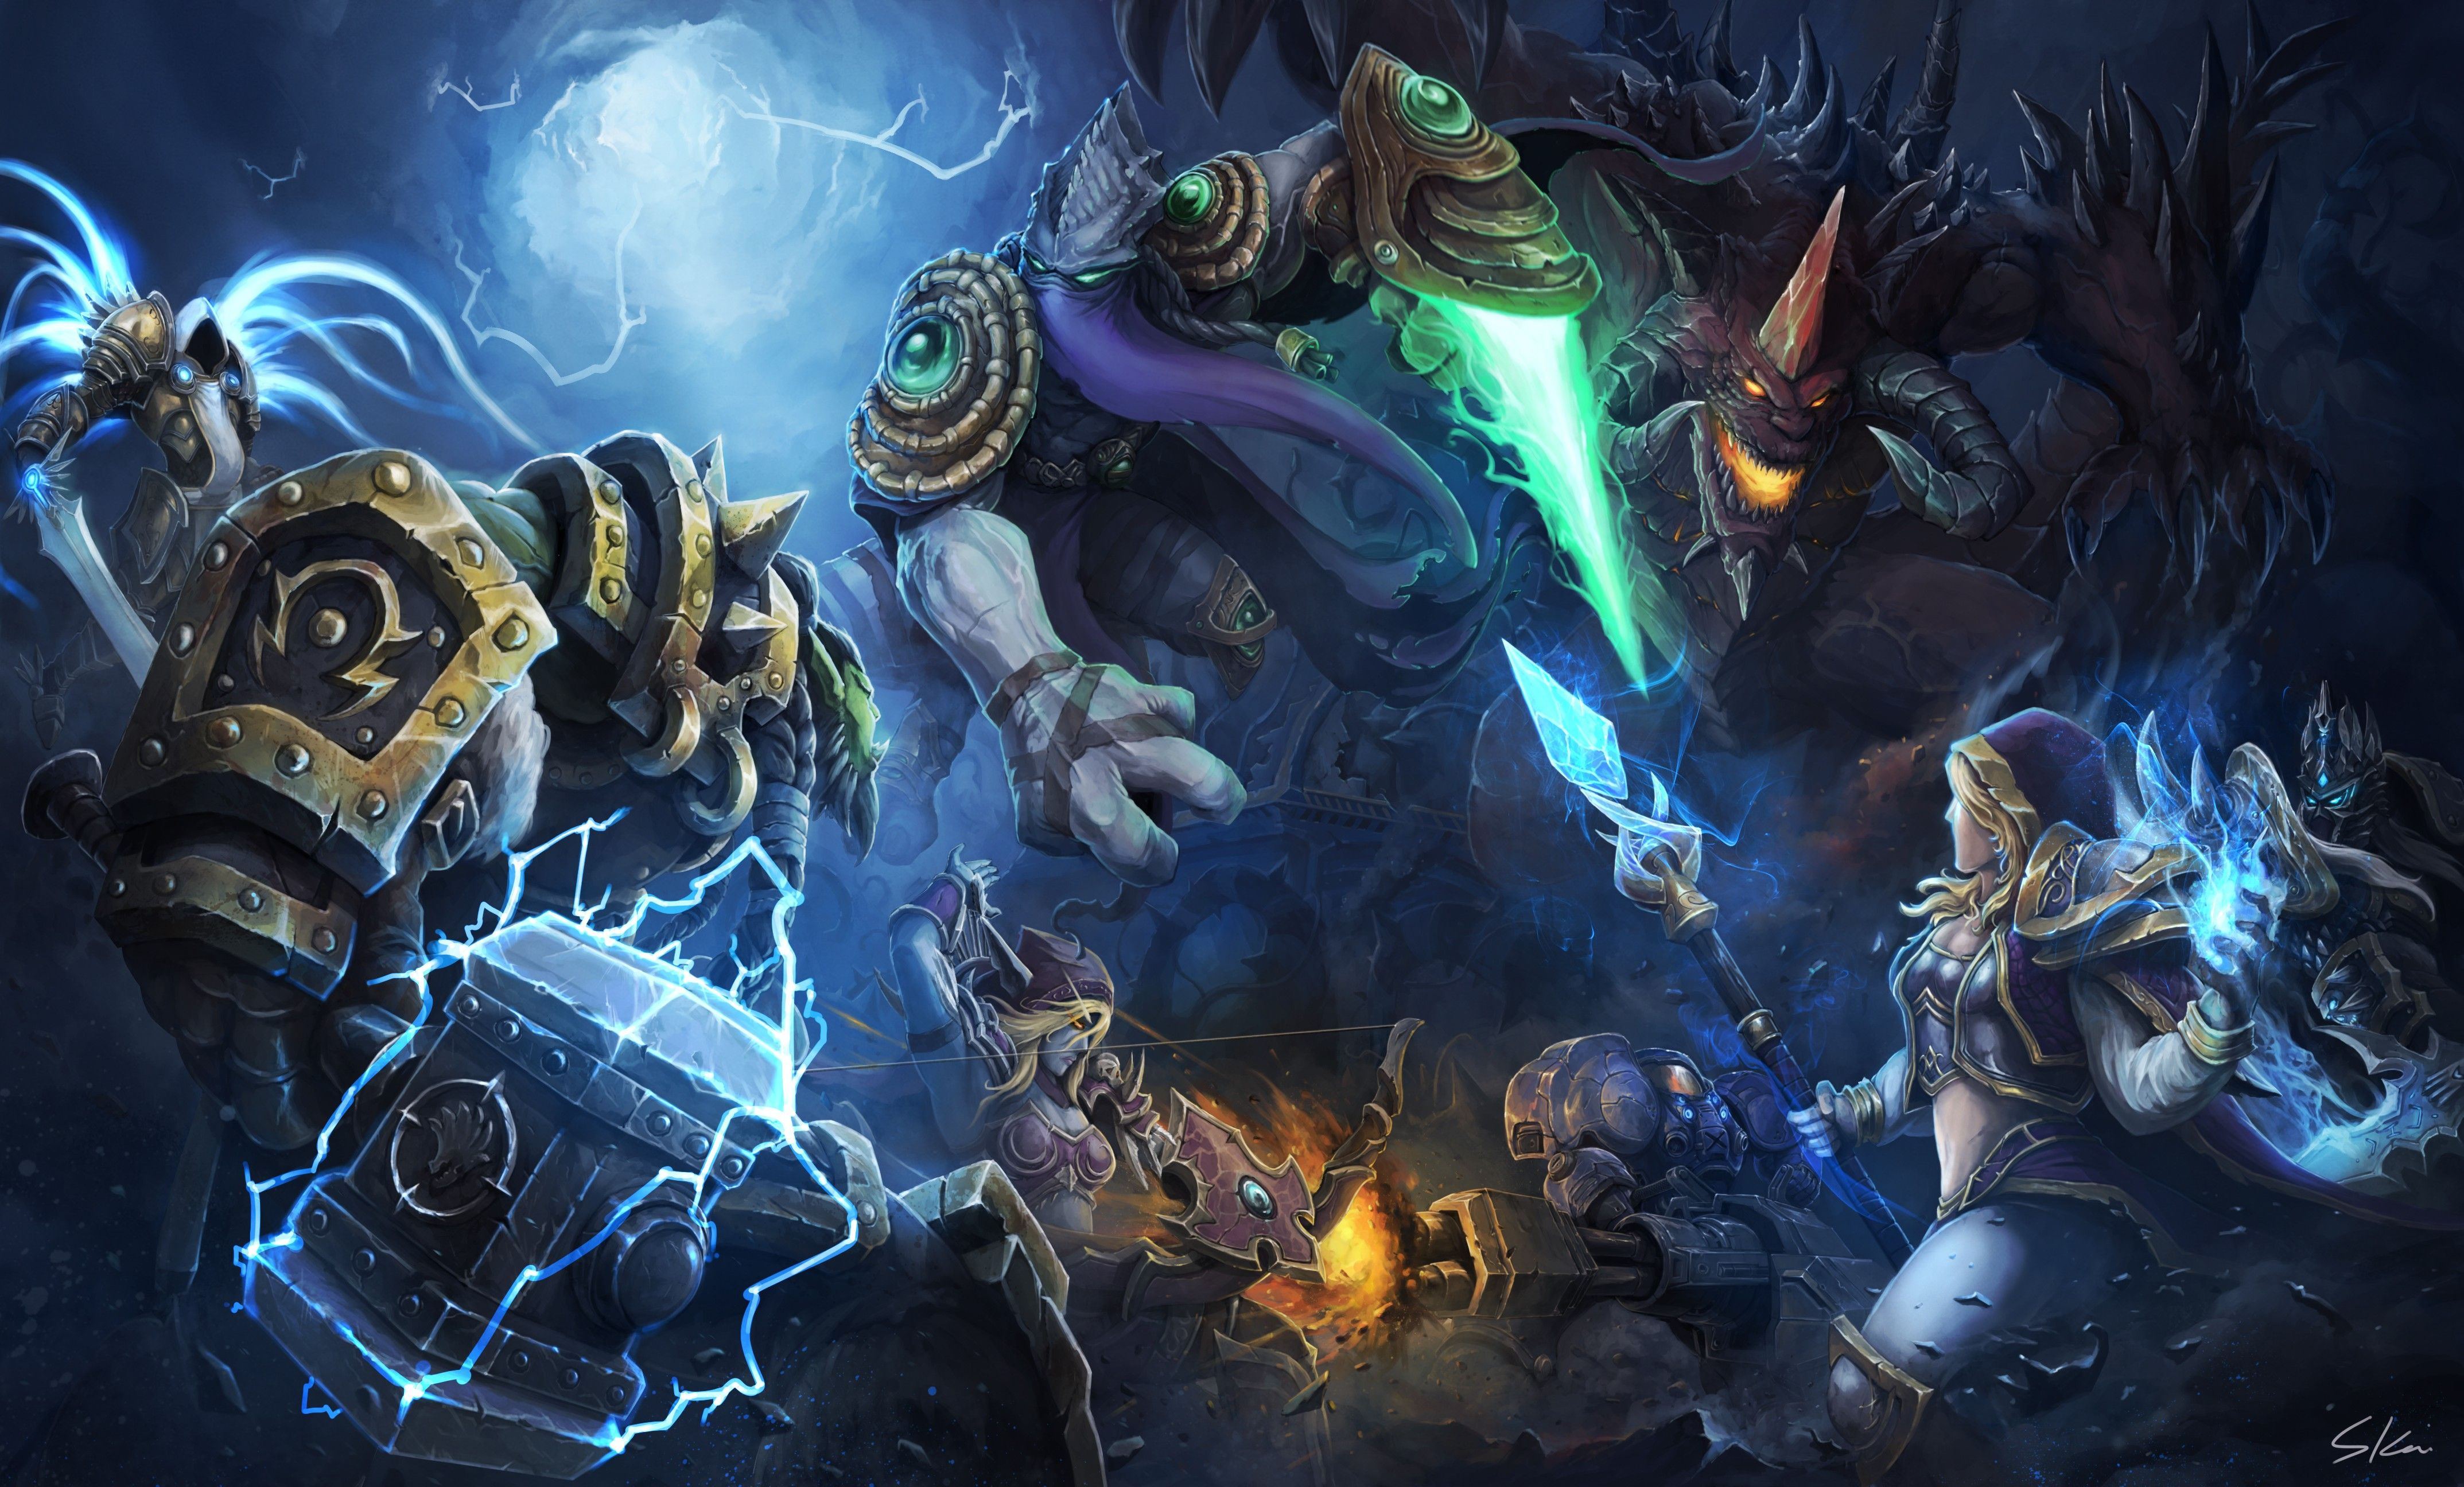 Heroes Of The Storm Sylvanas Windrunner Contests Blizzard Entertainment Wallpaper No 283079 Heroes Of The Storm World Of Warcraft Sylvanas Windrunner Thanks to everyone for making my weekly tier lists such popular places. heroes of the storm sylvanas